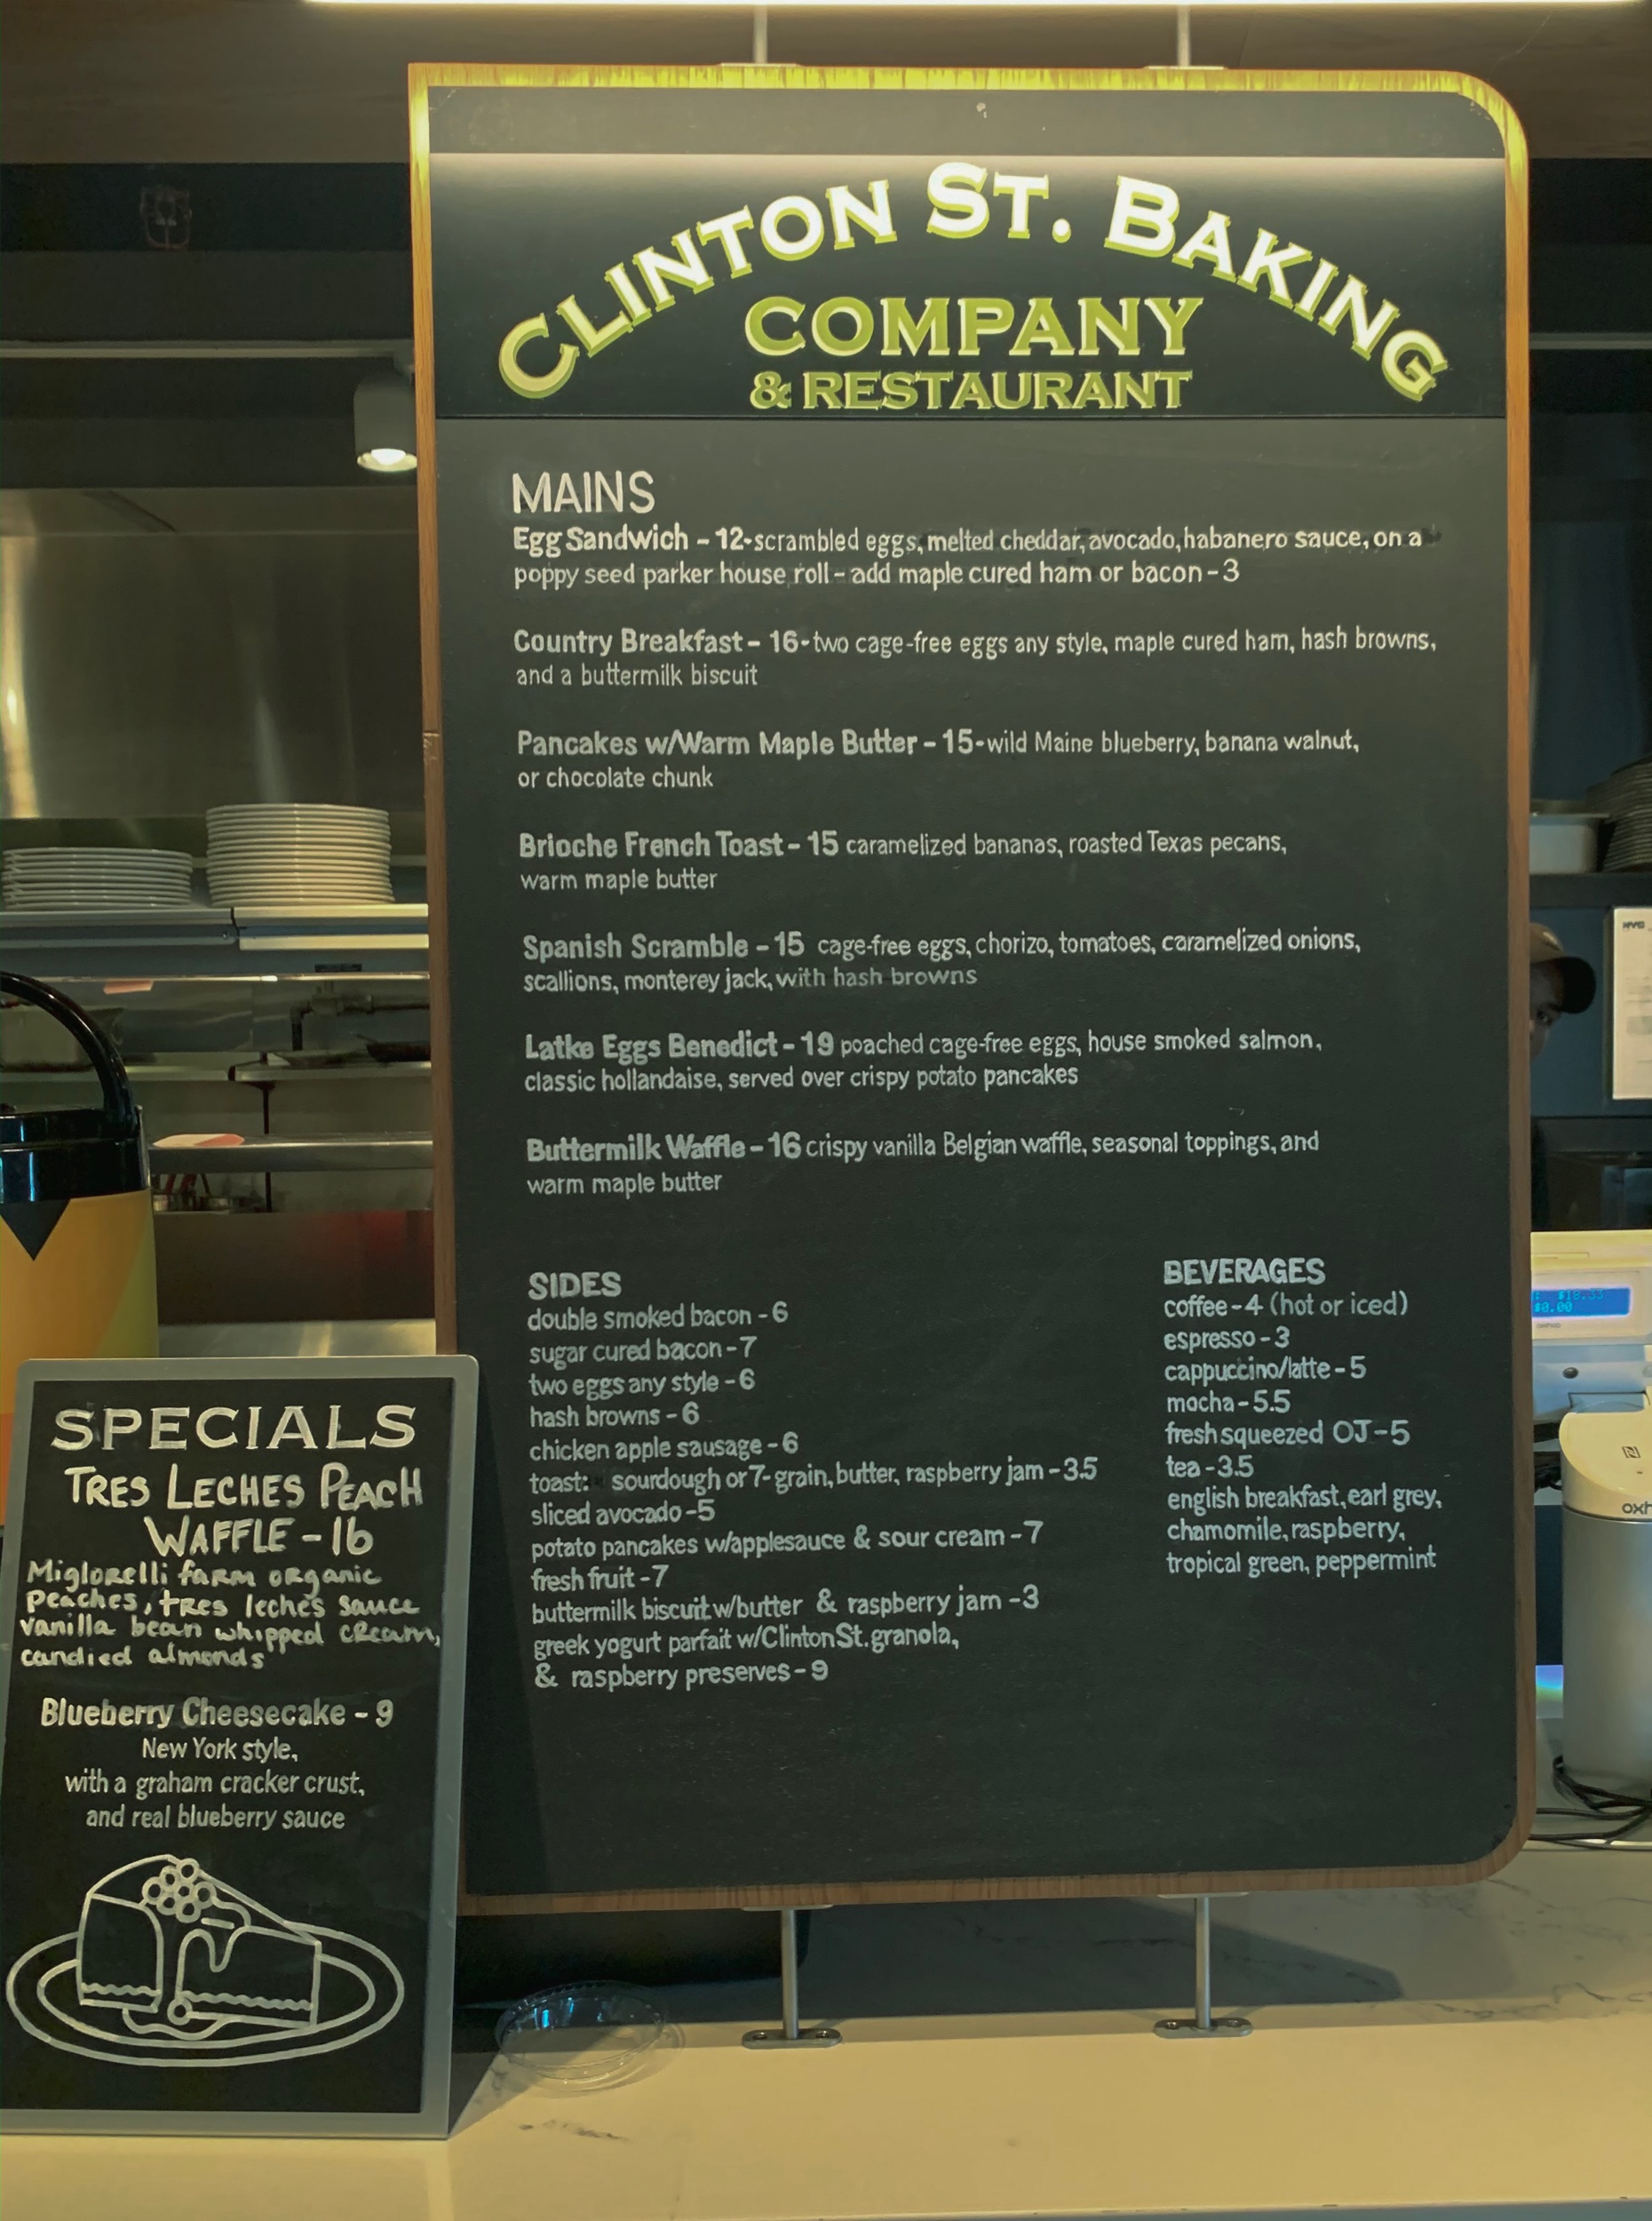 Menu for Clinton St. Baking Co.